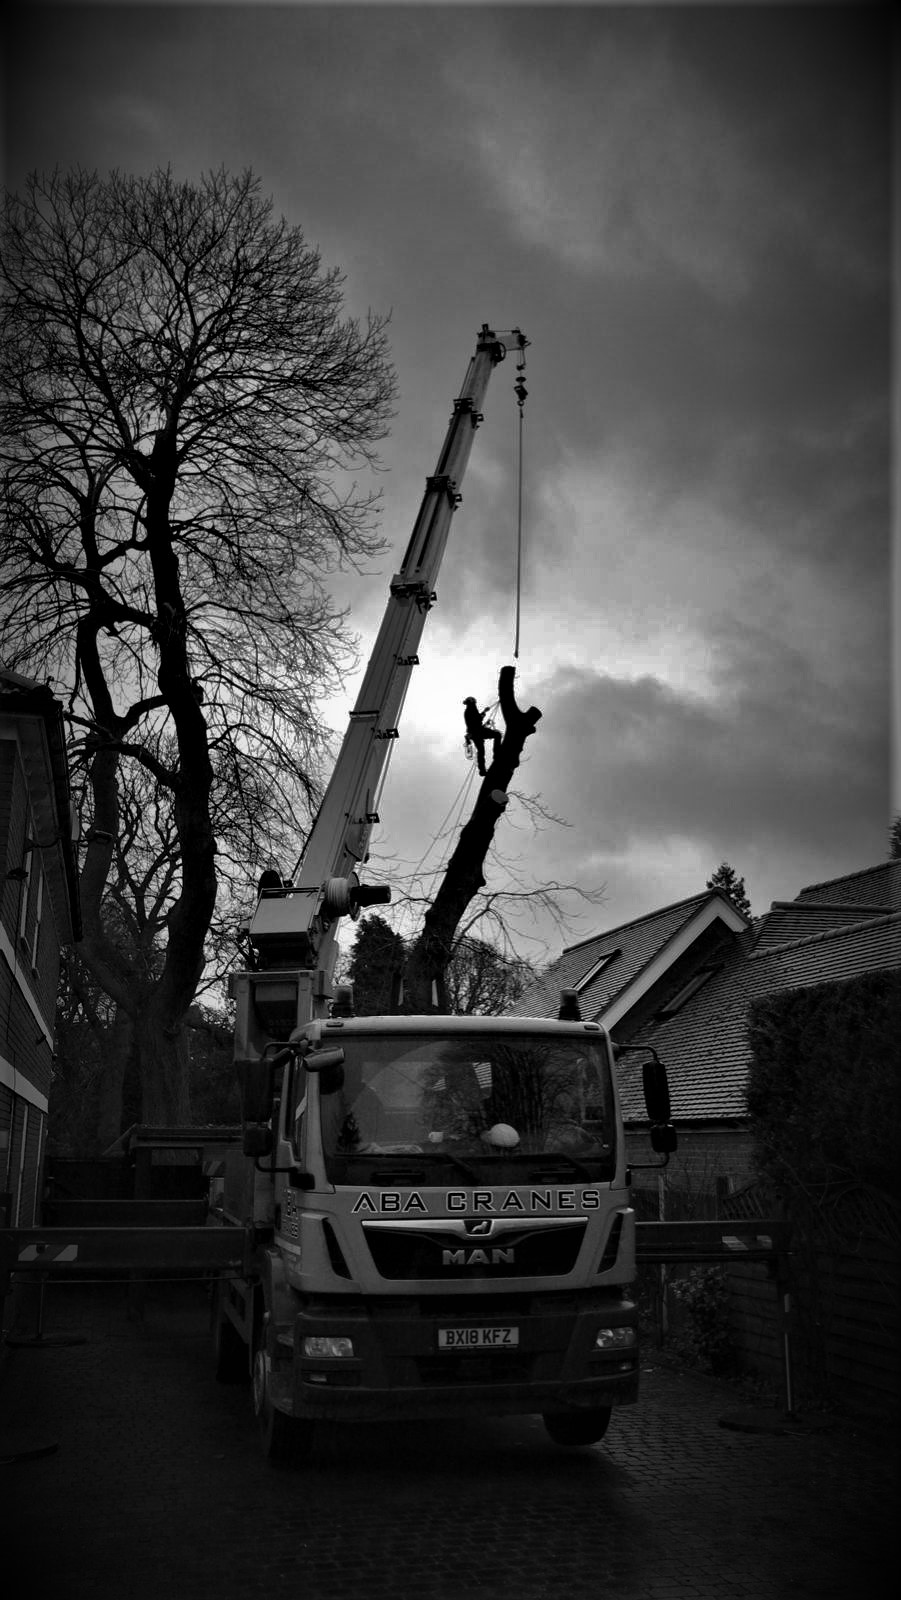 Removal of Sweet chestnut over house using a crane